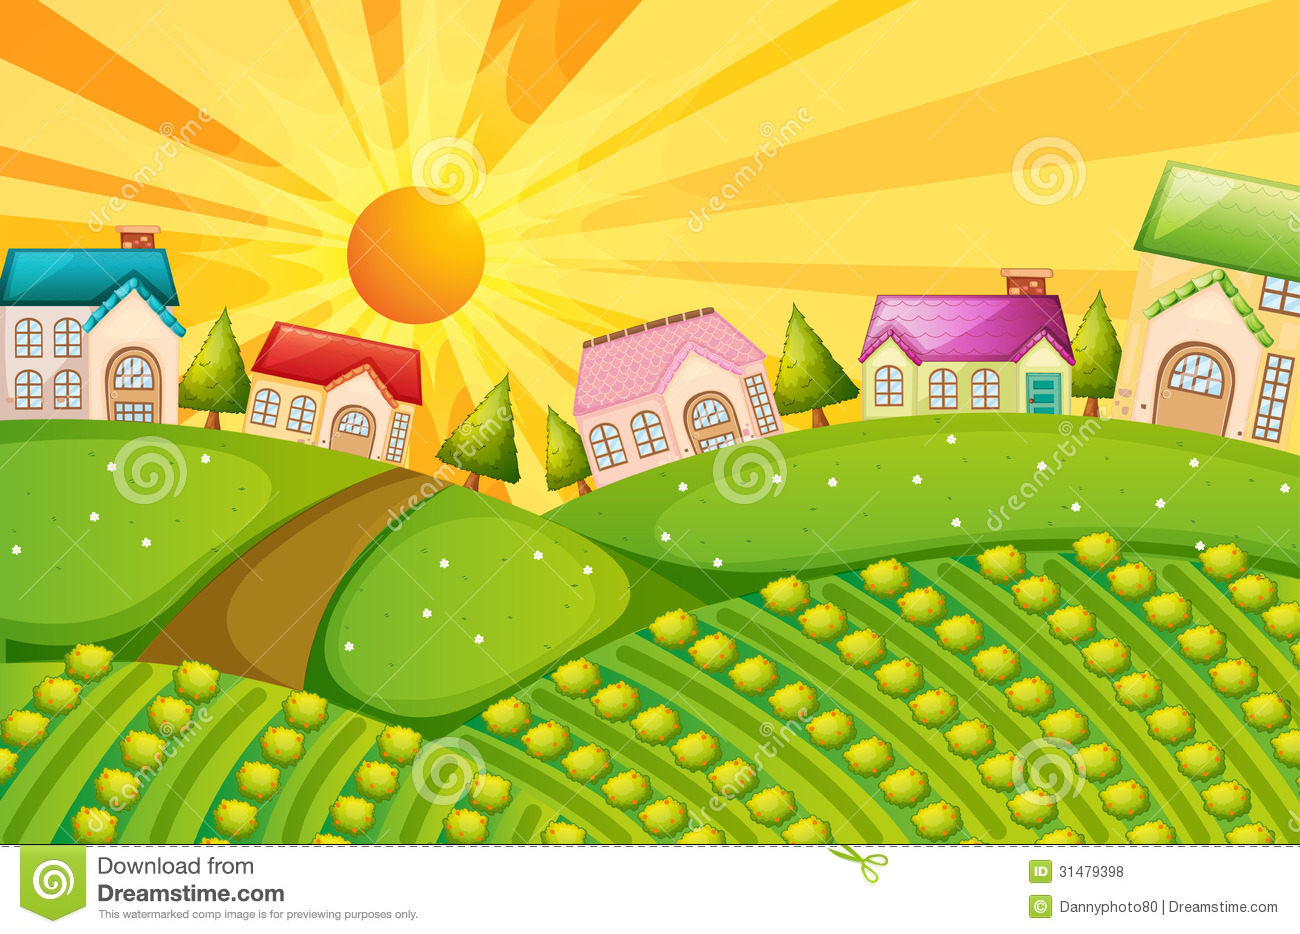 Free Vector Illustration Juniper: A Village With Farm Stock Vector. Image Of Rays, Harvest